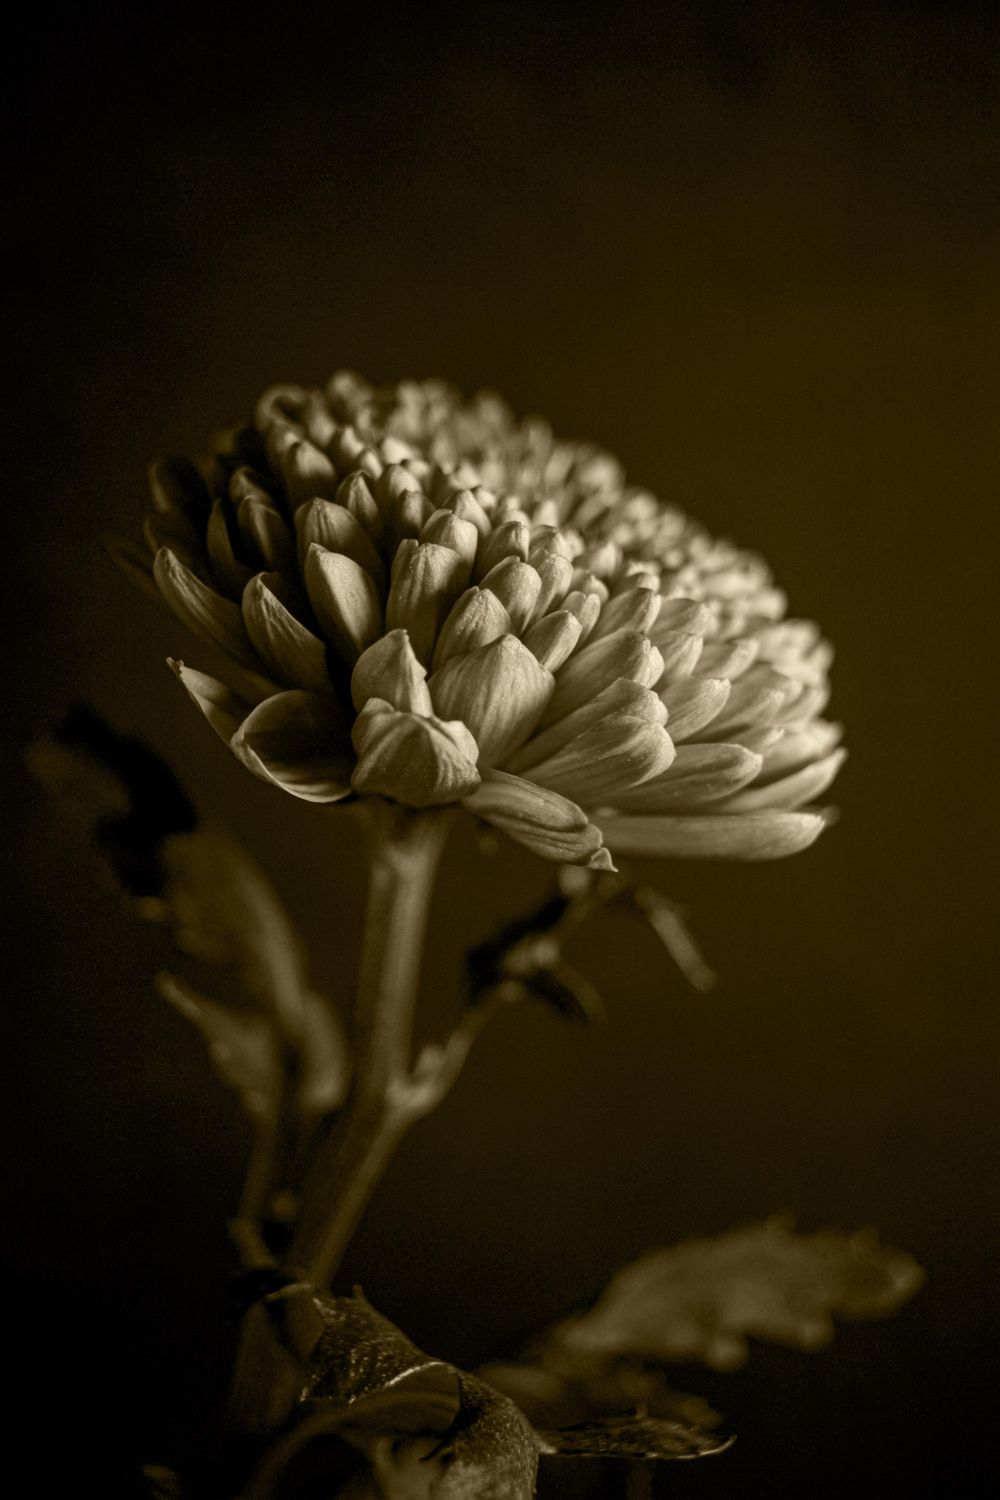 Black & White Mastery - image 2 - student project